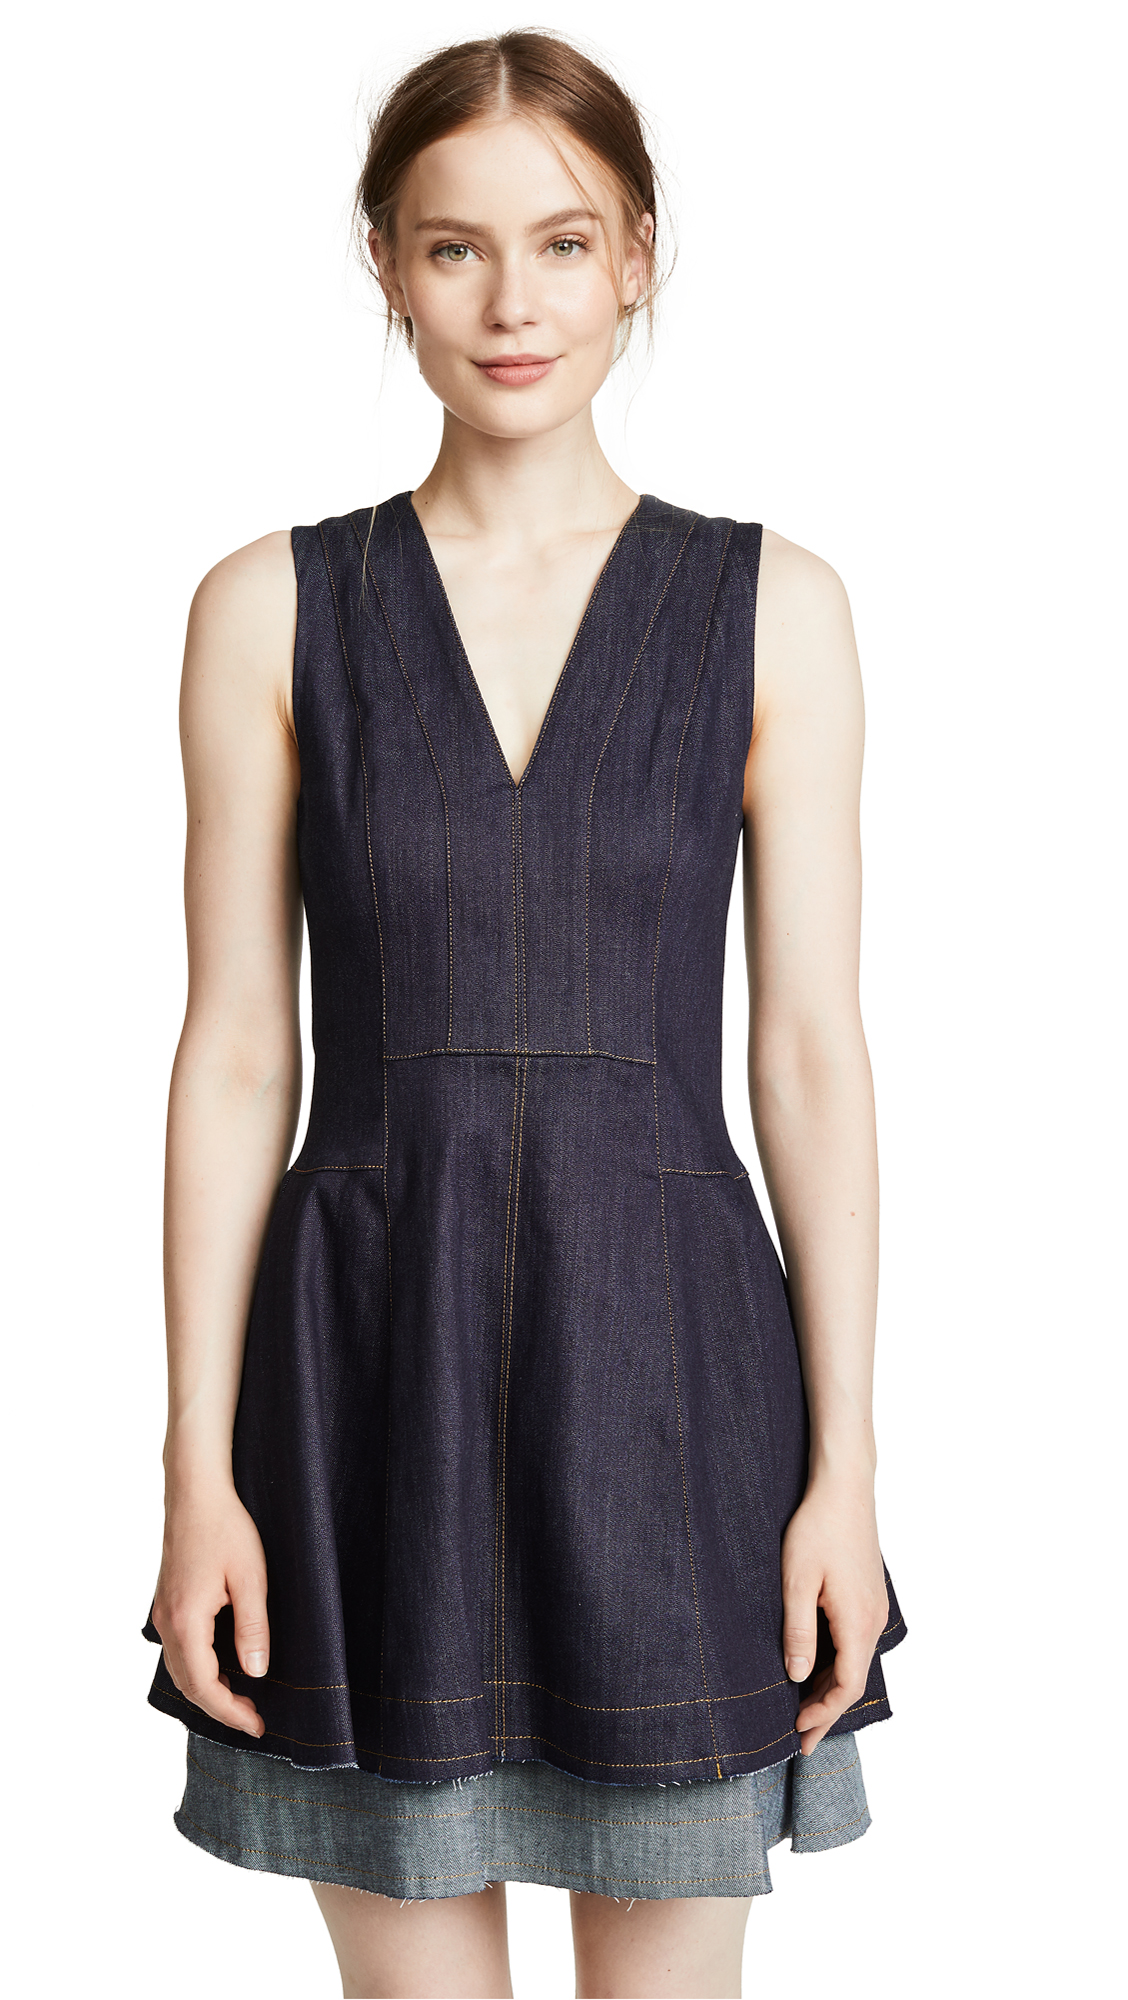 Derek Lam 10 Crosby Fit & Flare Dress In Dark Indigo